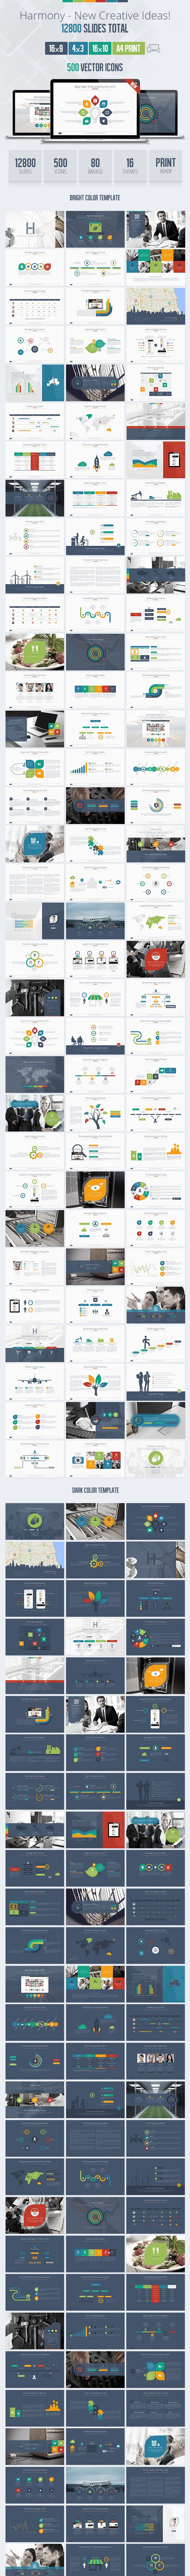 Harmony Usability Powerpoint Presentation Template - Business PowerPoint Templates